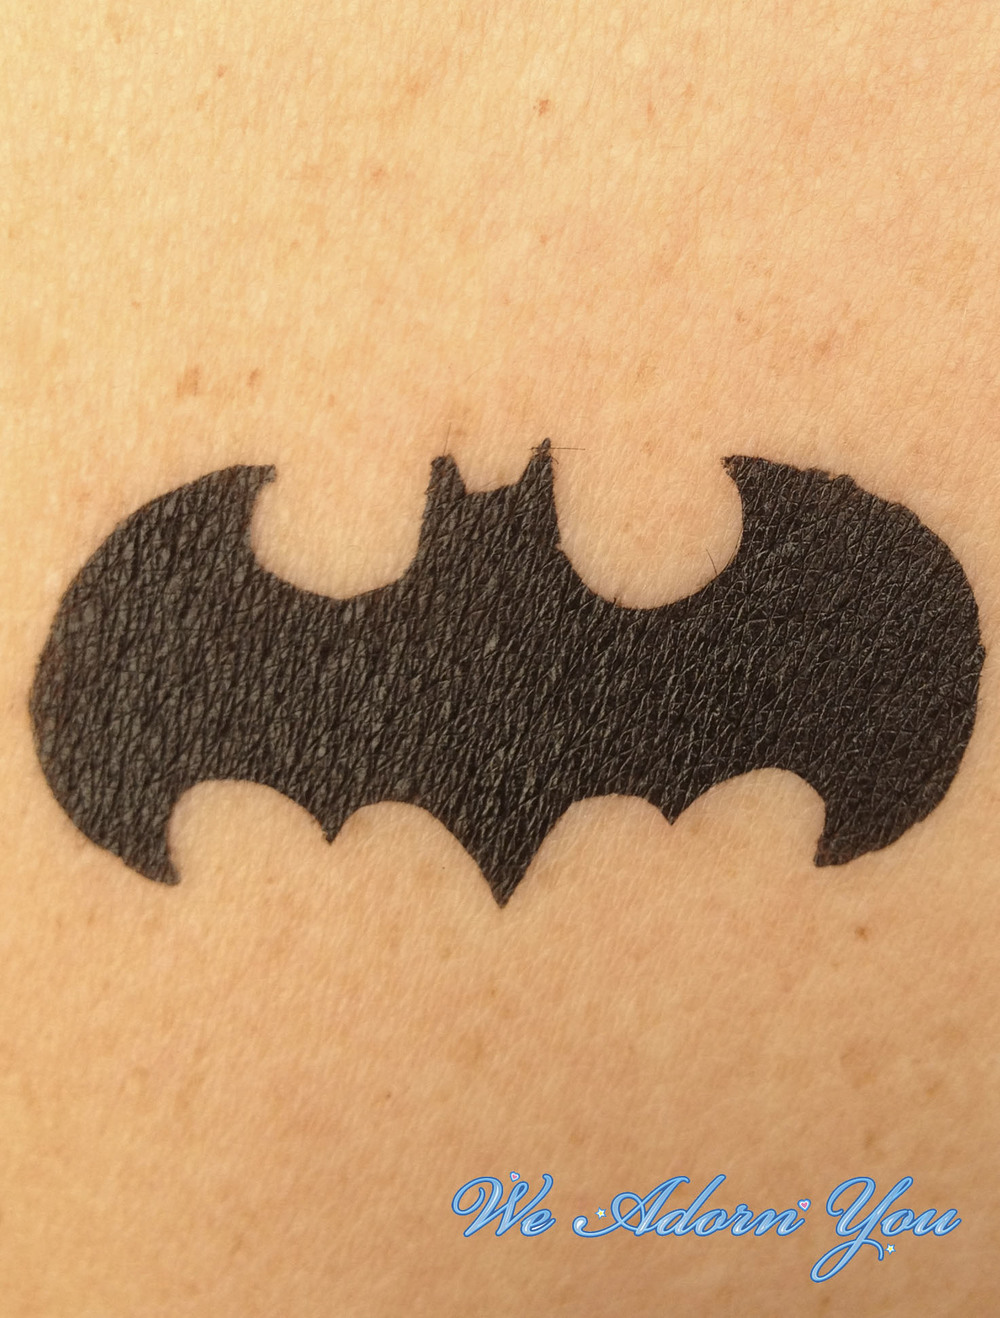 Airbrush Tattoo Batman - We Adorn You.jpg